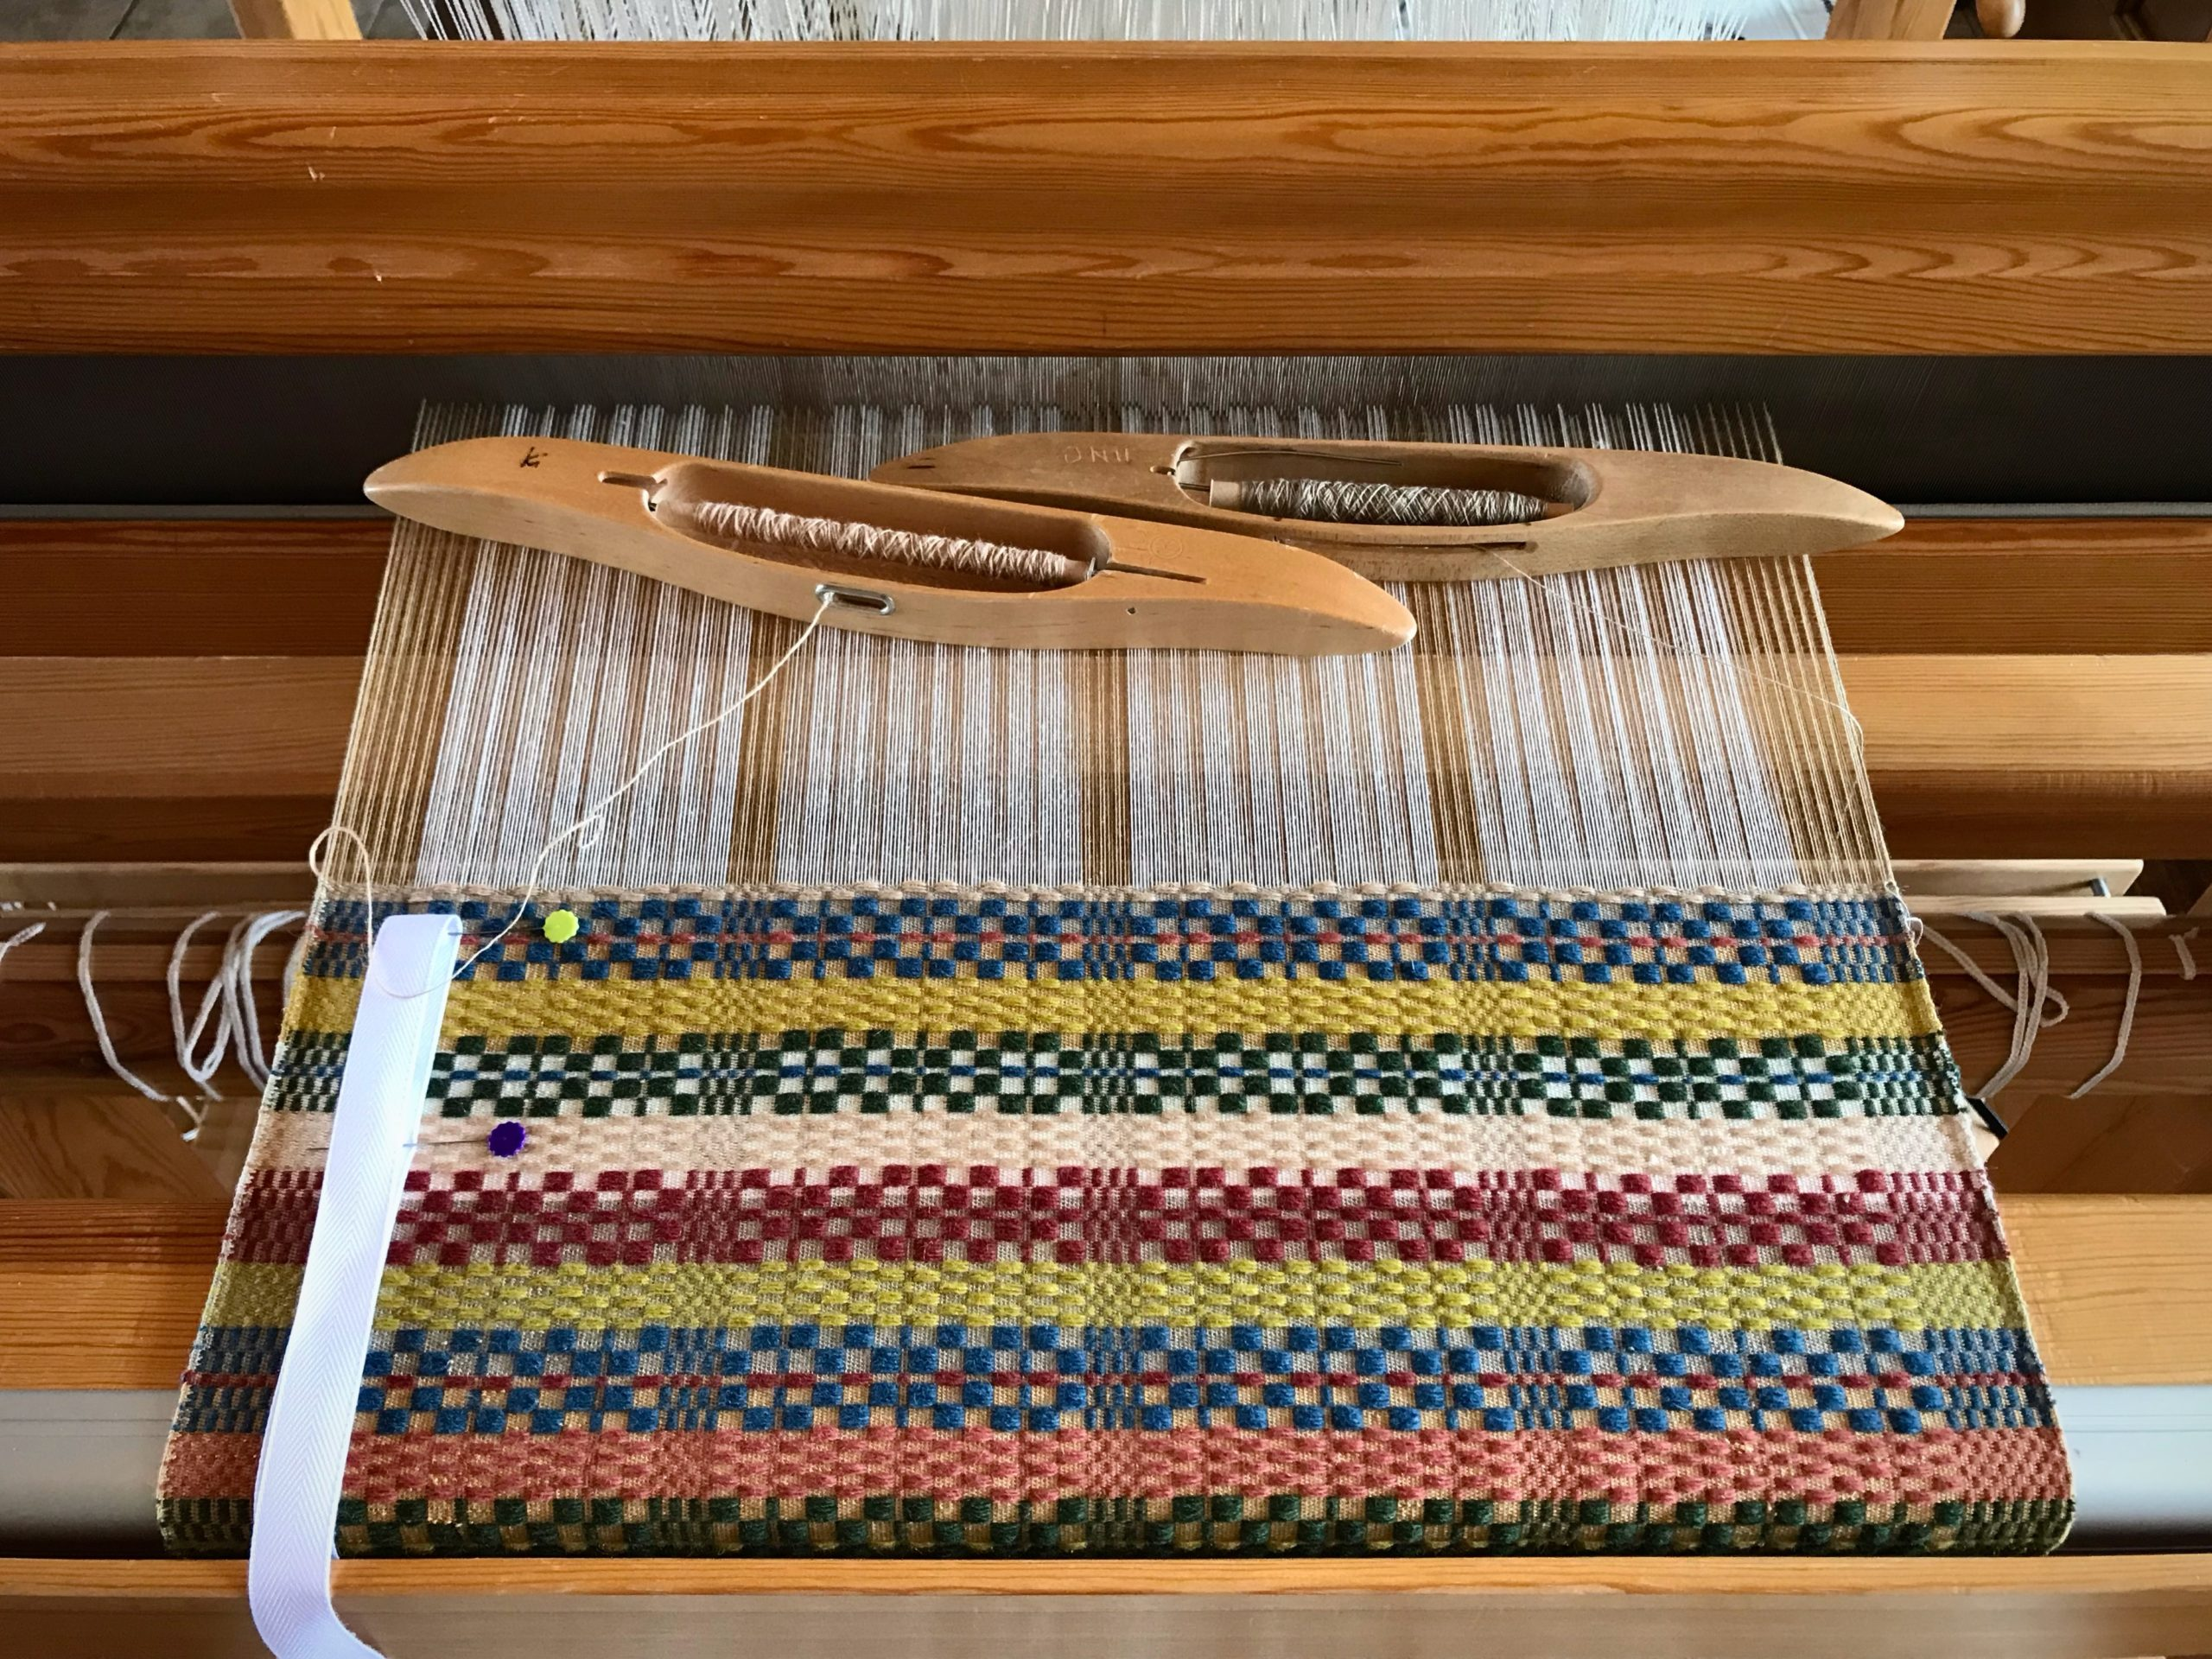 Weaving monksbelt in a mixed-colors palette.